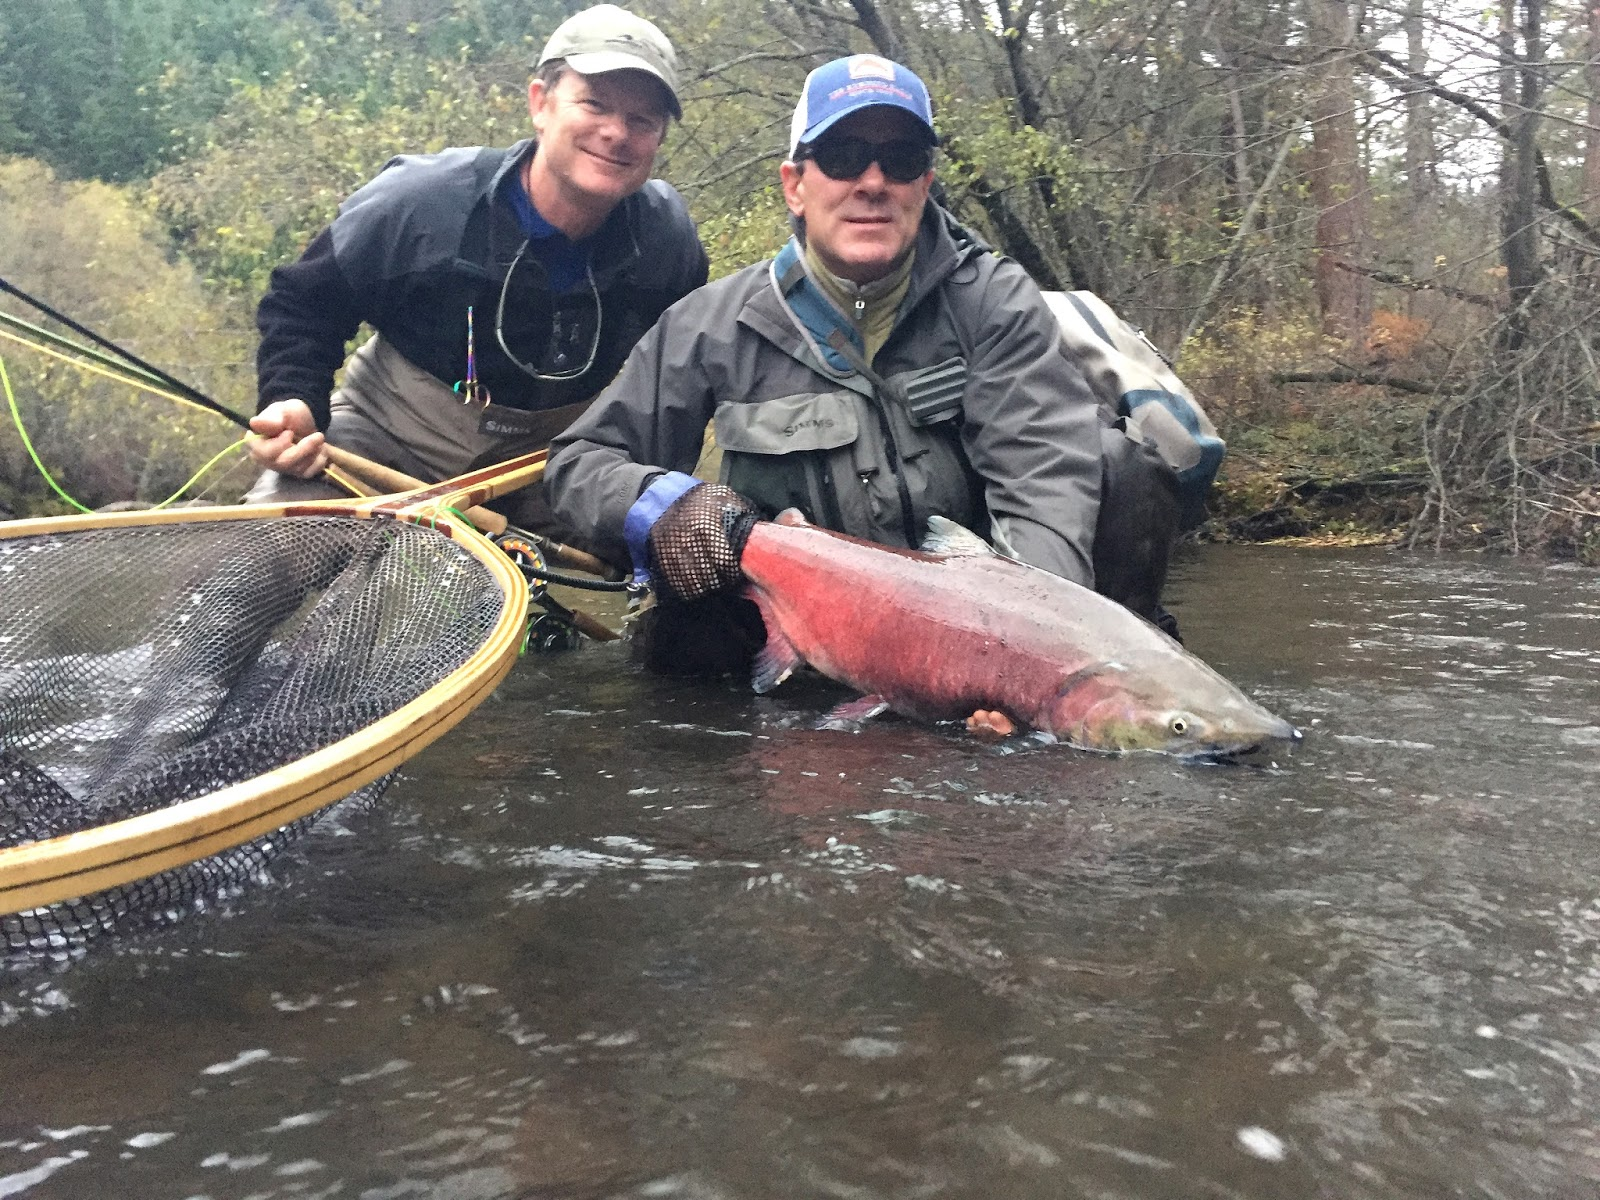 The evening hatch reports klickitat river report 11 15 15 for Klickitat river fishing report